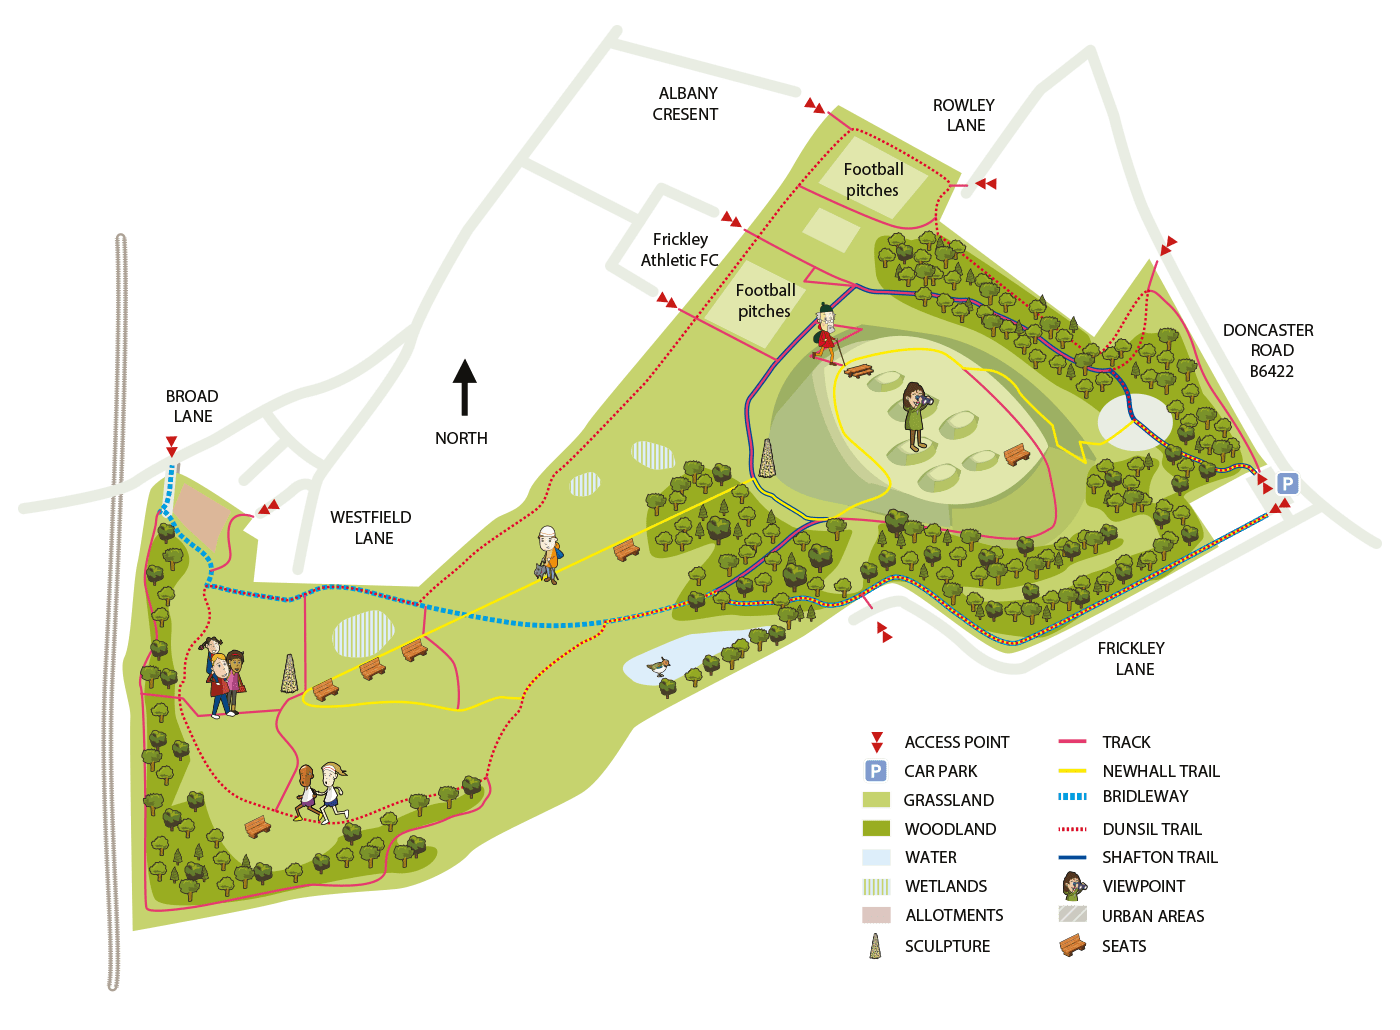 Map of Frickley Country Park